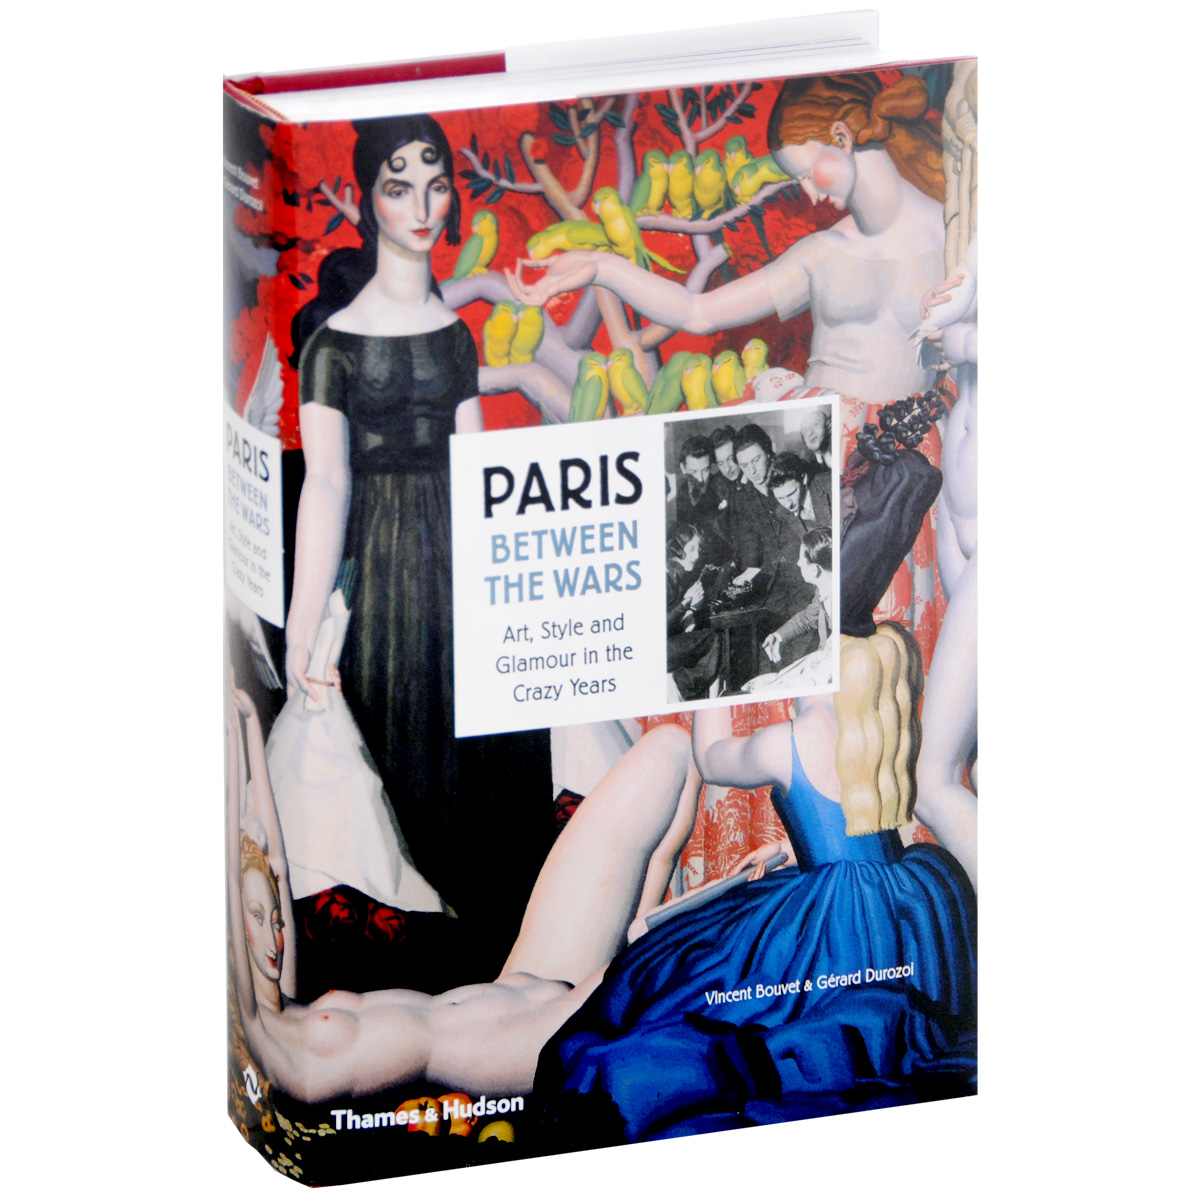 Paris Between the Wars: Art, Style and Glamour in the Crazy Years фаллоимитатор на присоске art style 30 018407